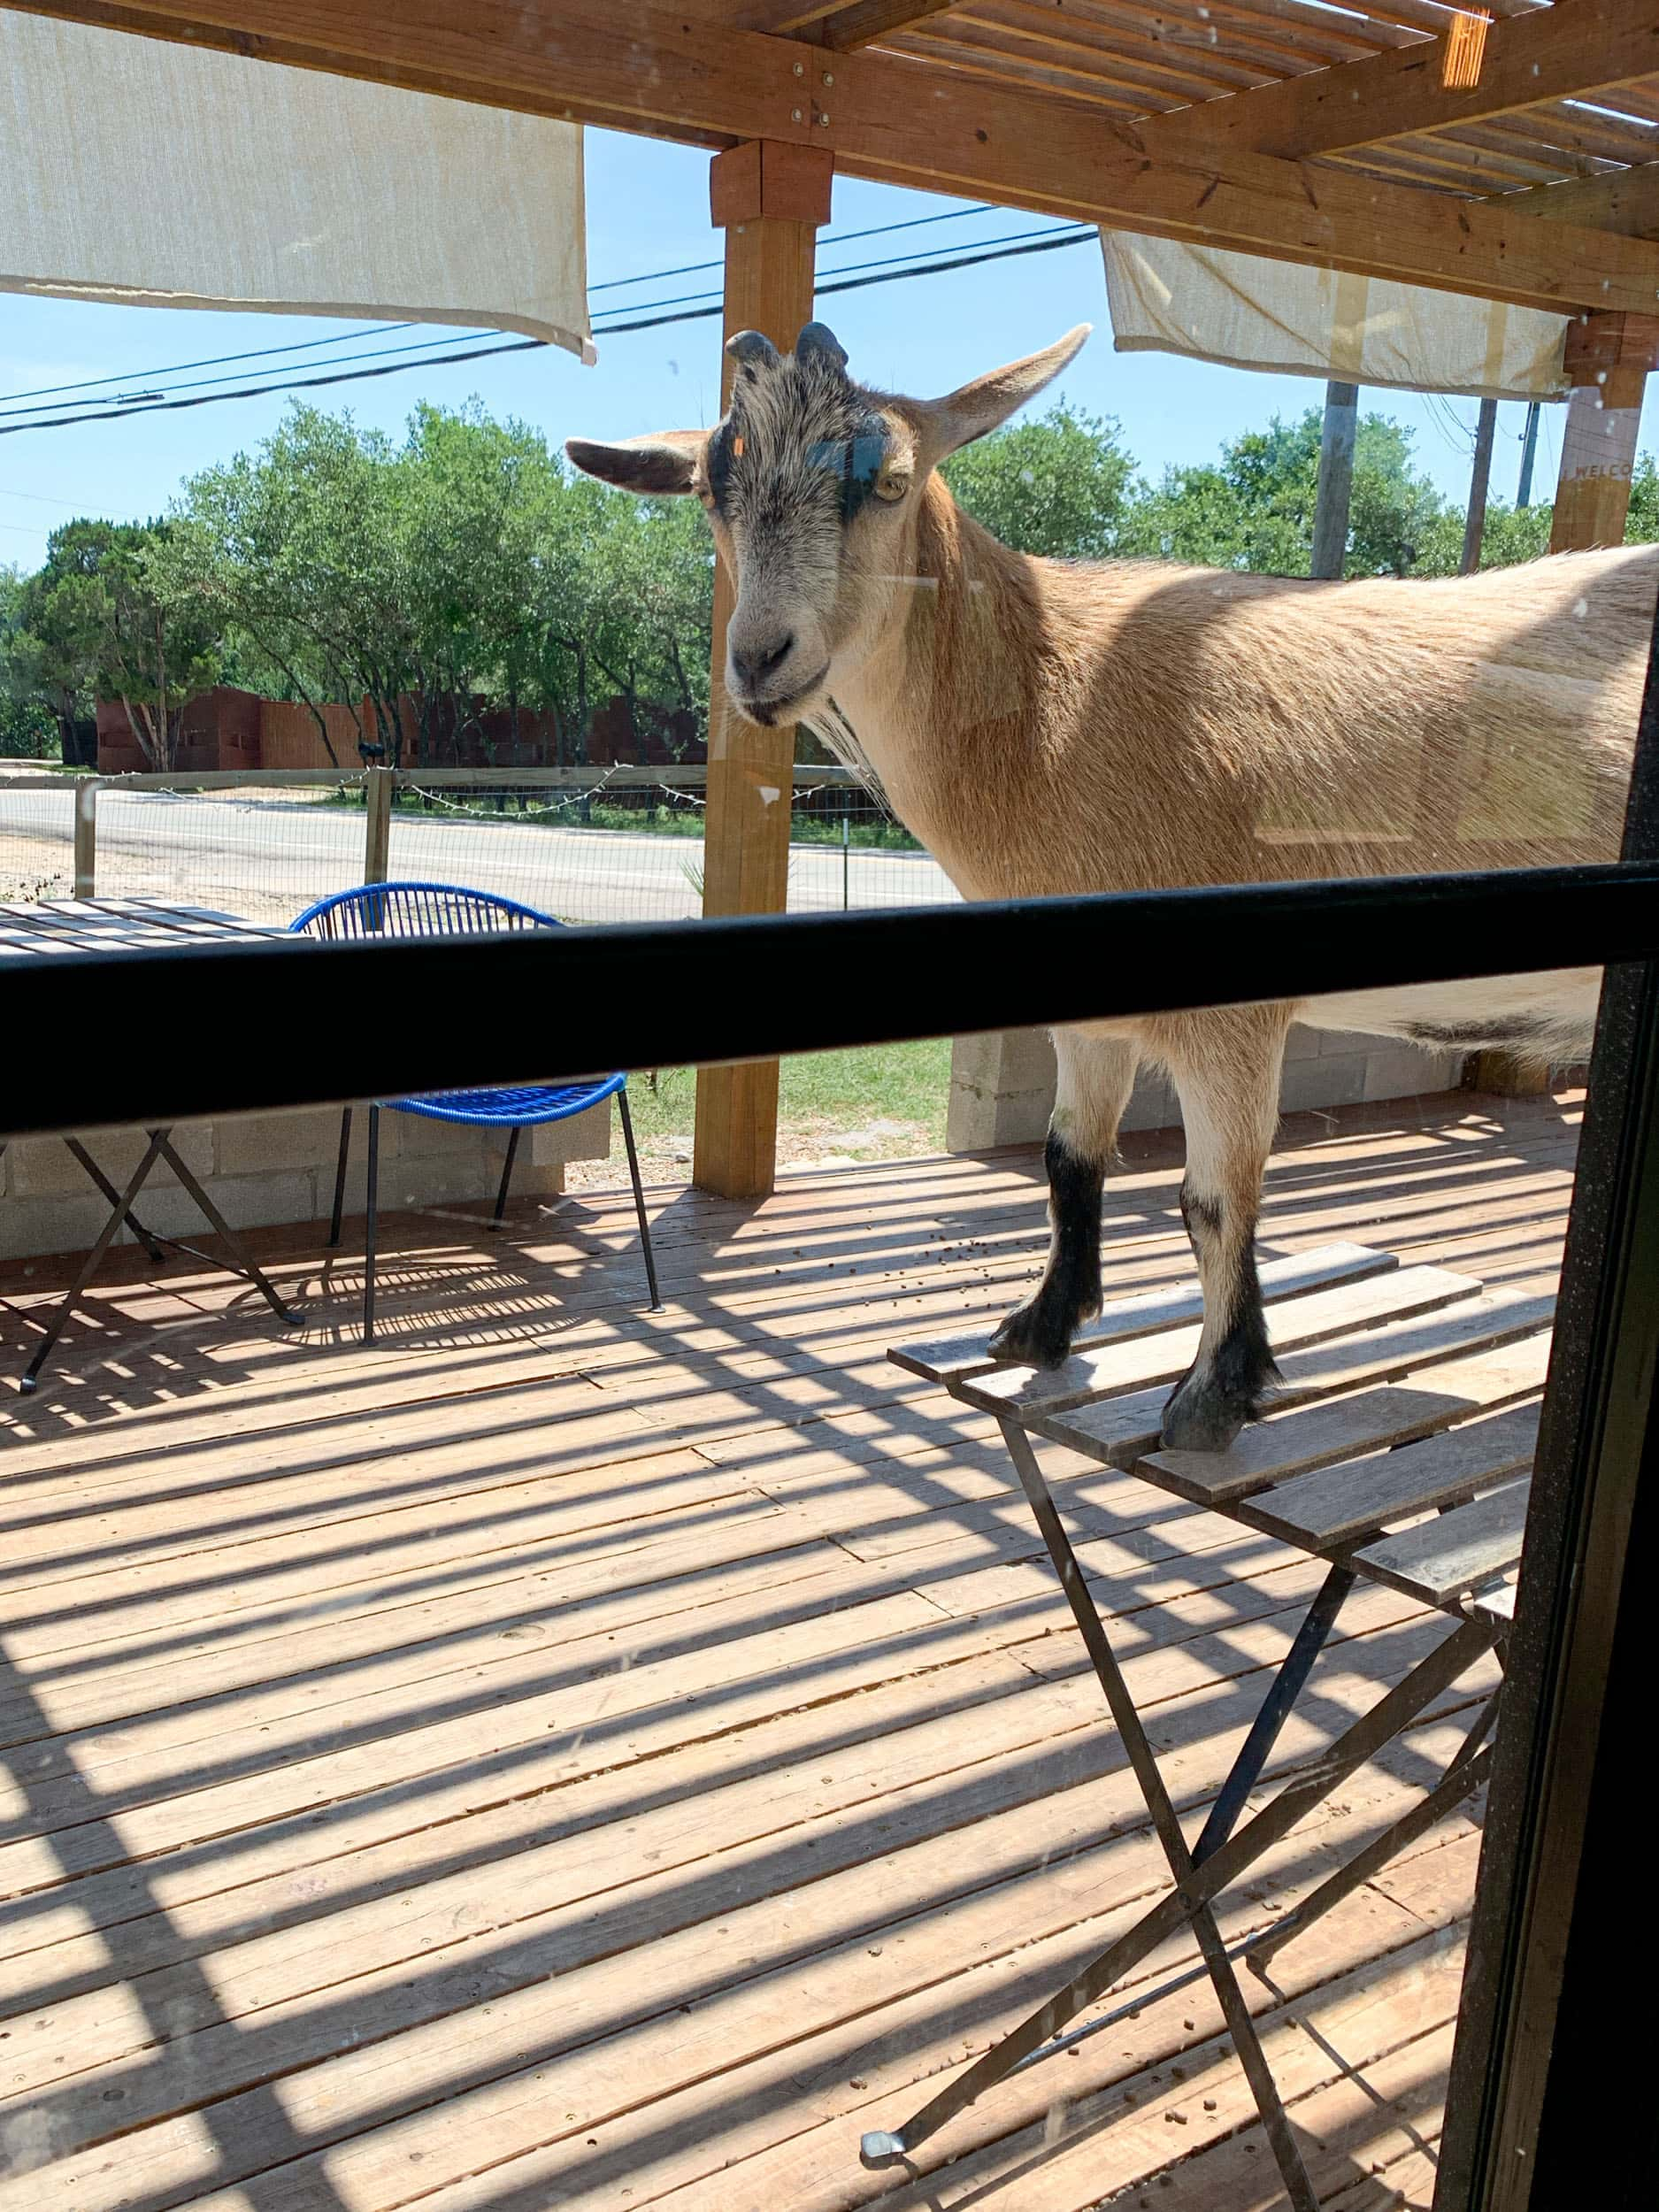 Butters the goat draws visitors from across Austin